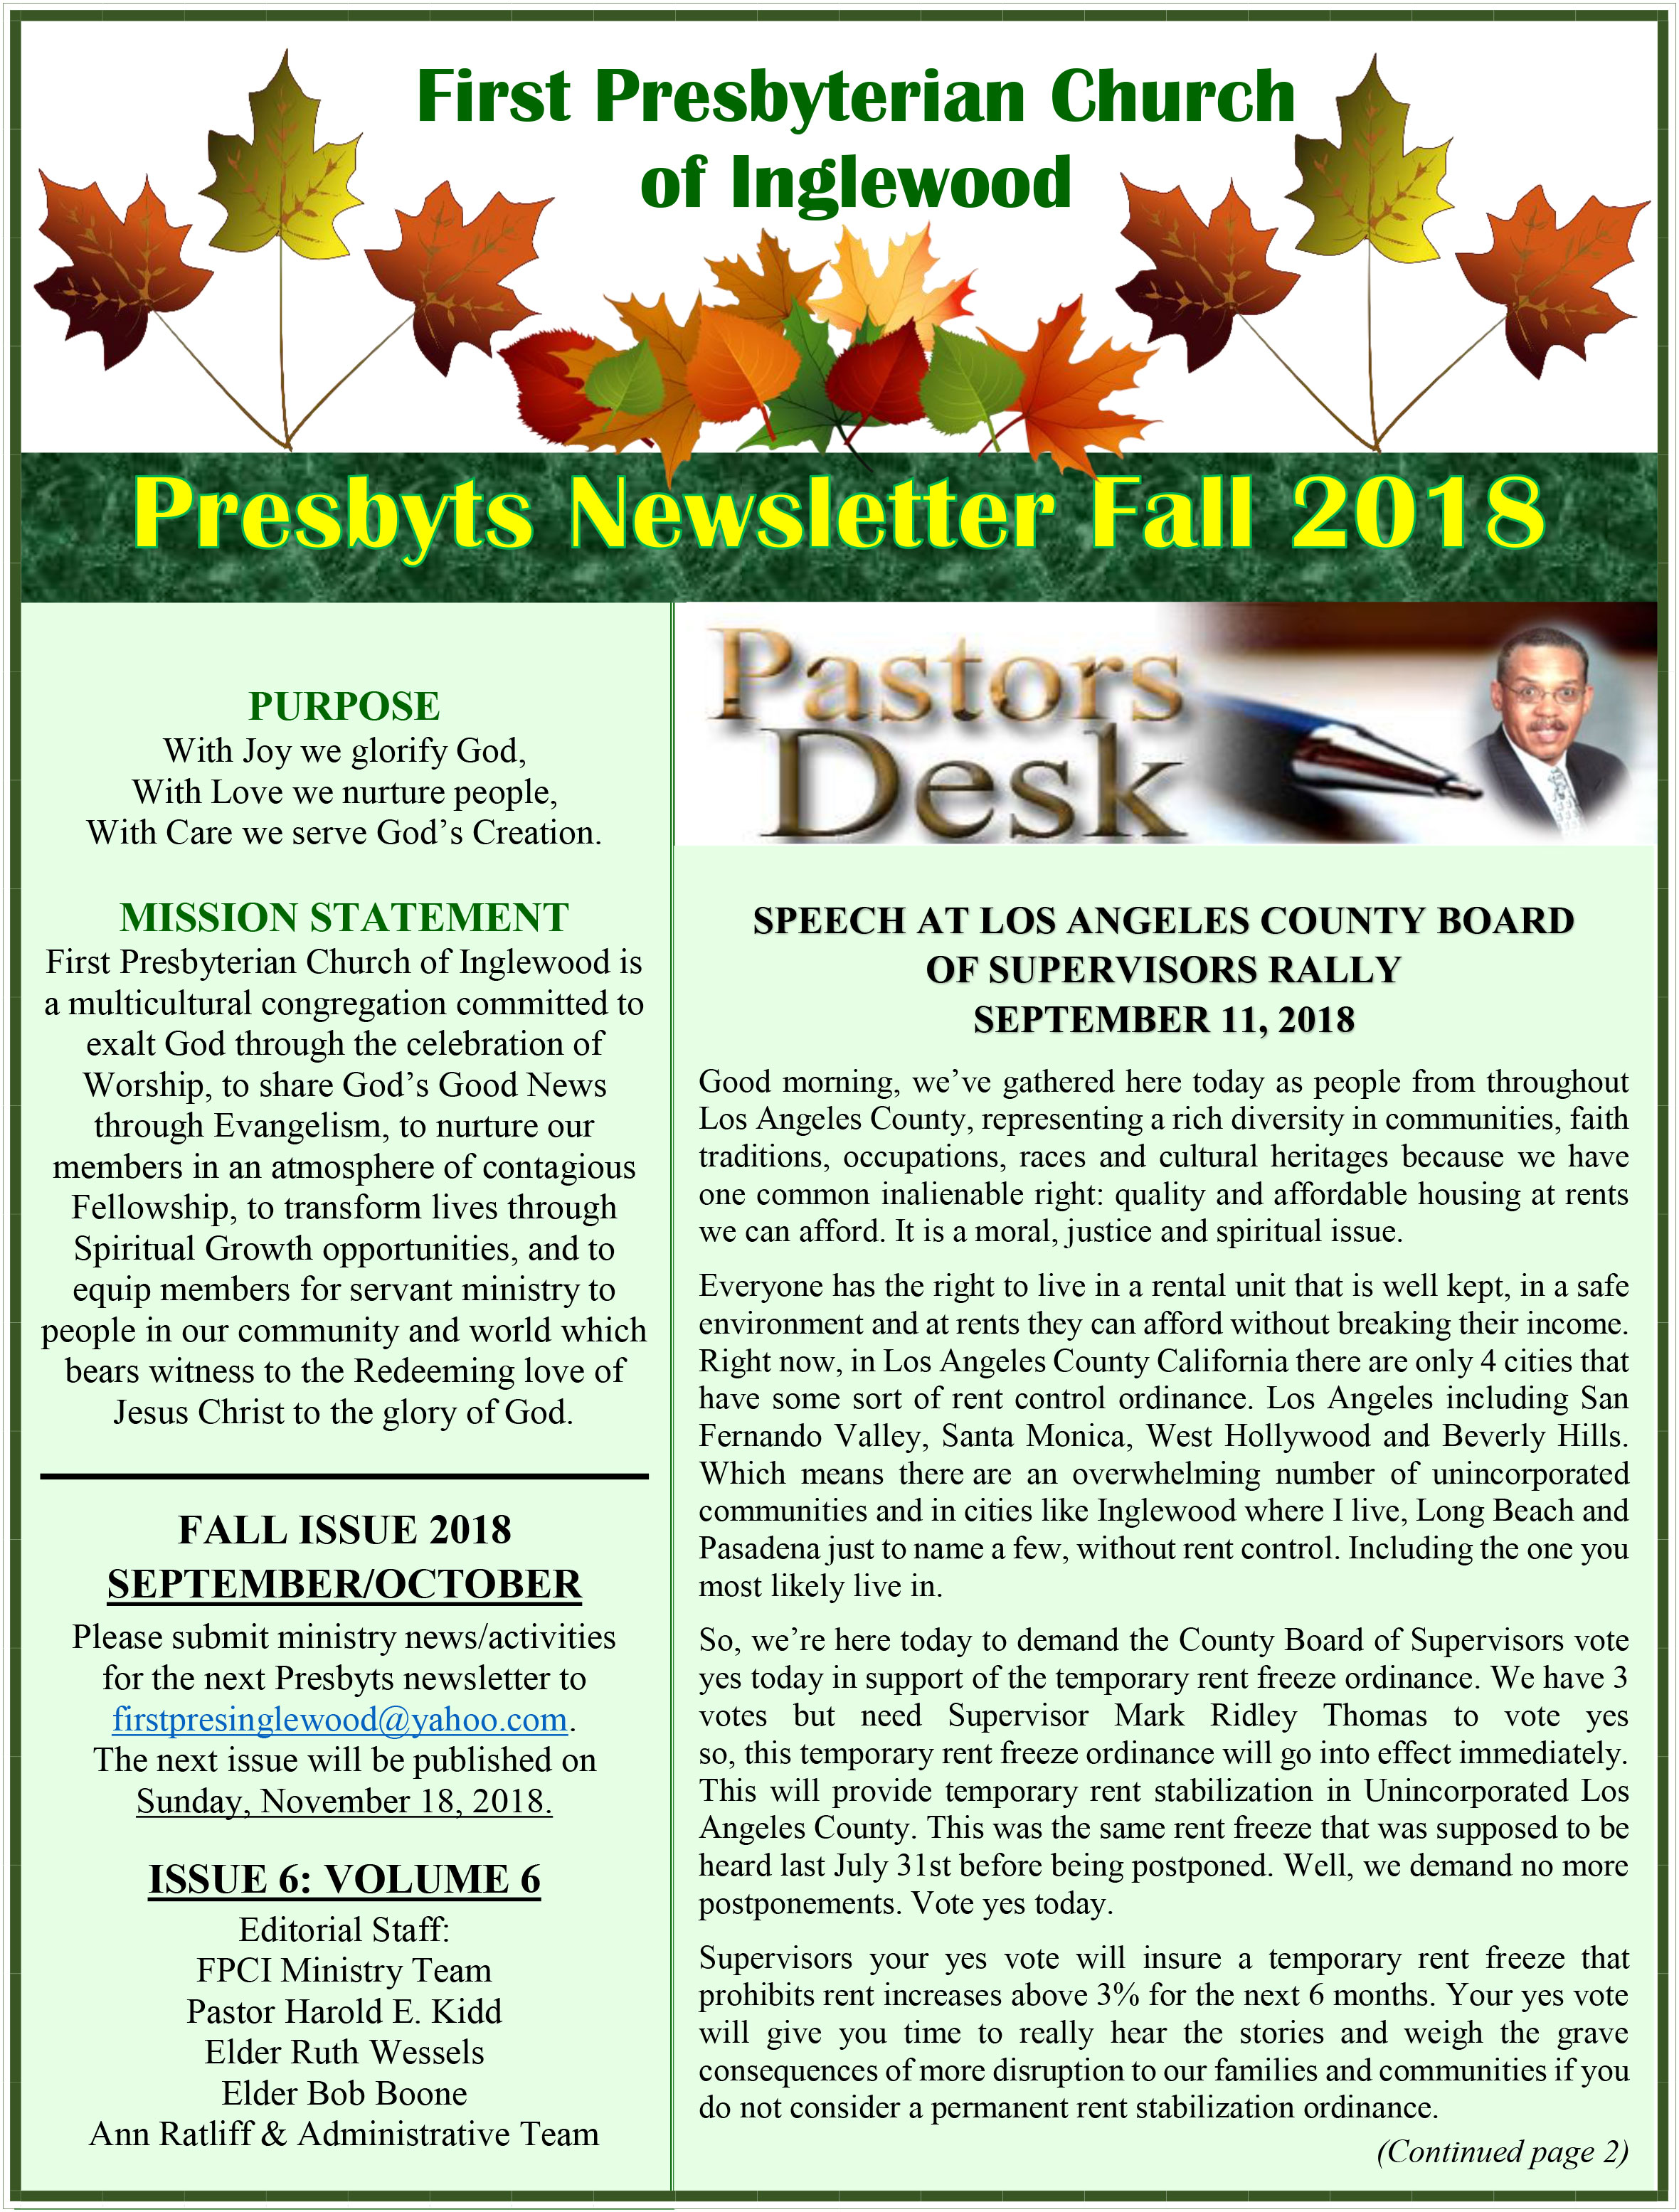 Presbyts Newsletter: Fall Issue